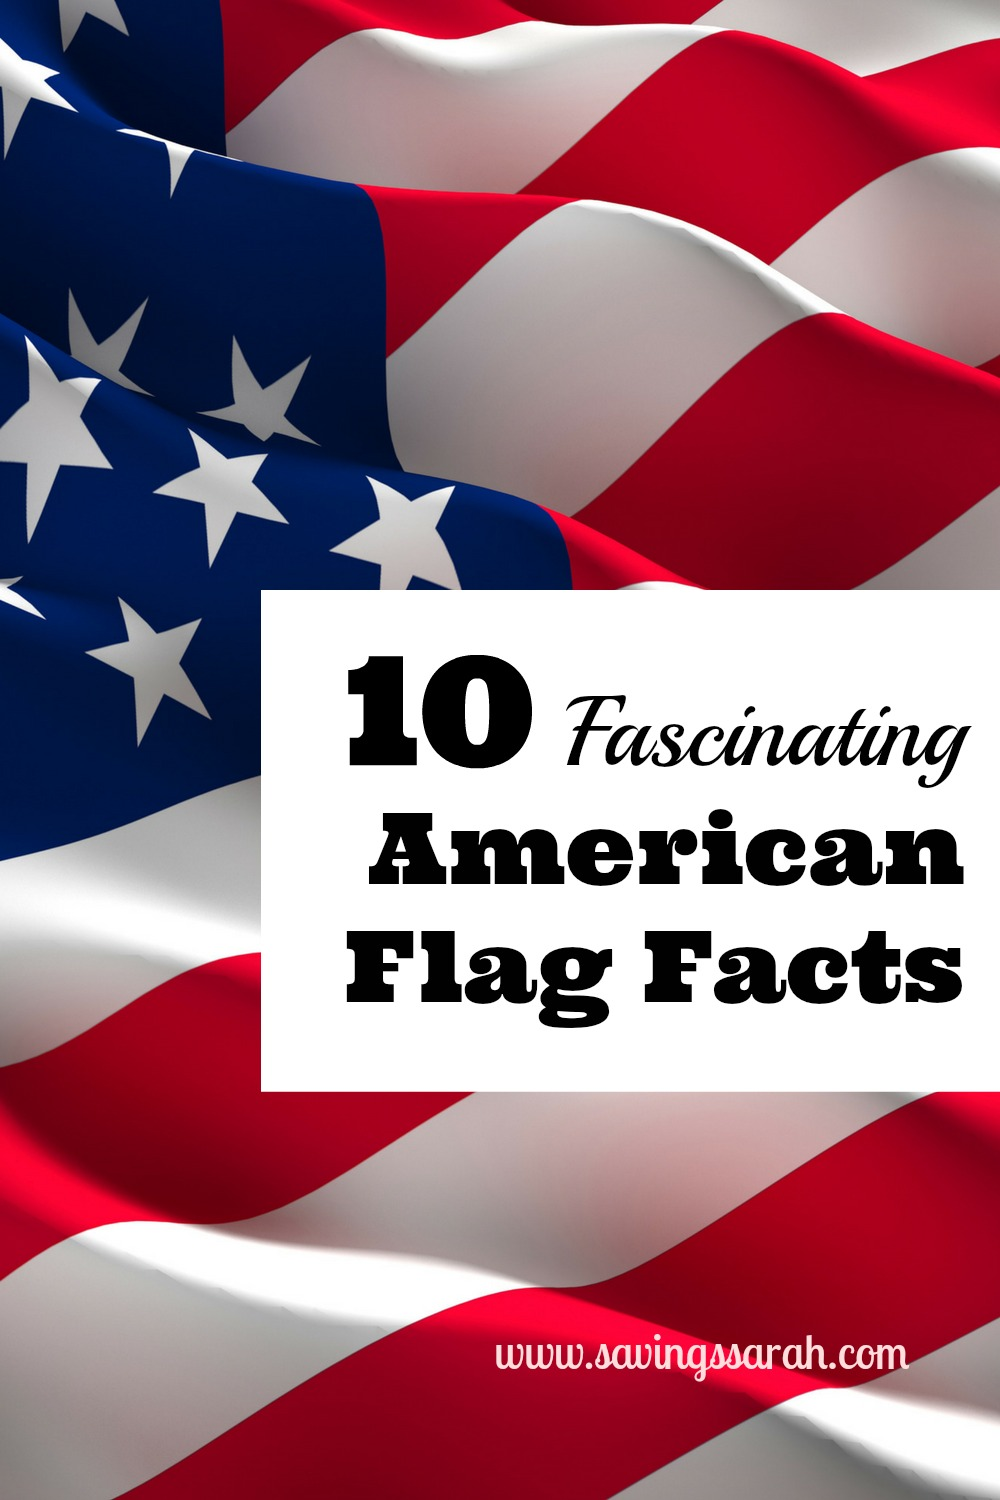 photo regarding Cub Scout Flag Ceremony Printable identified as 10 Appealing American Flag Information and facts - Generating and Preserving with